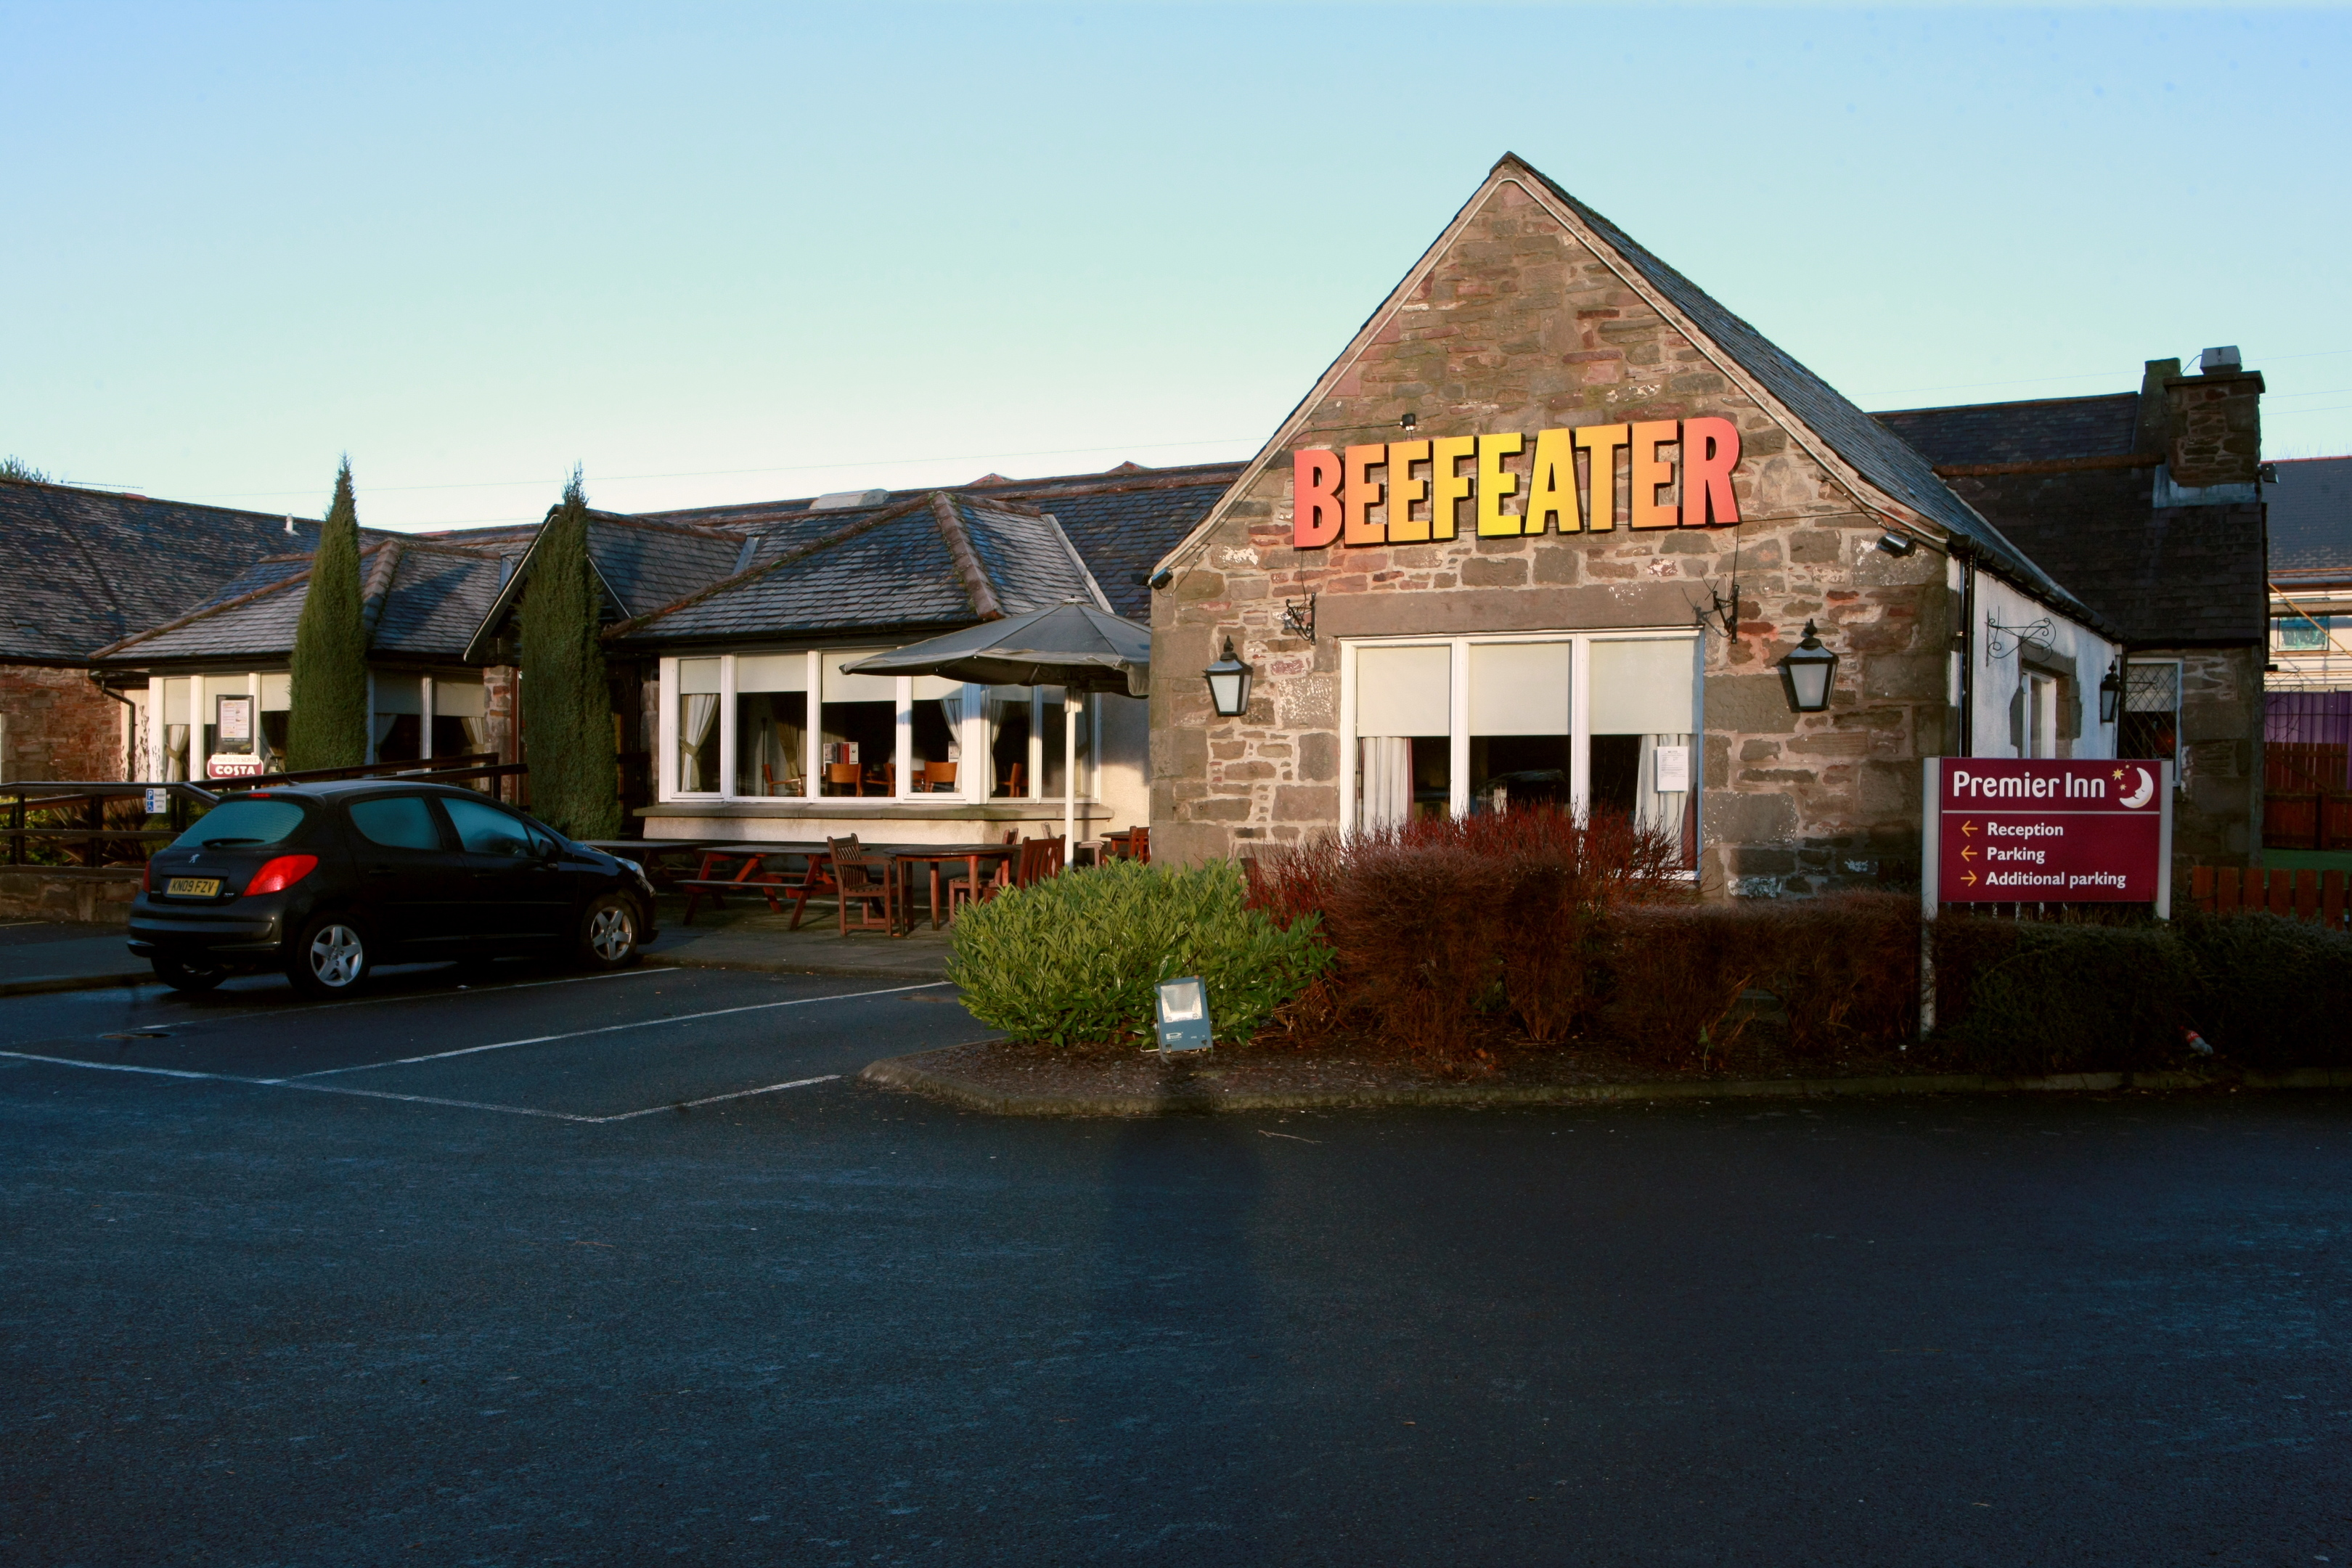 The restaurant closed on Tuesday after a boiler breakdown.